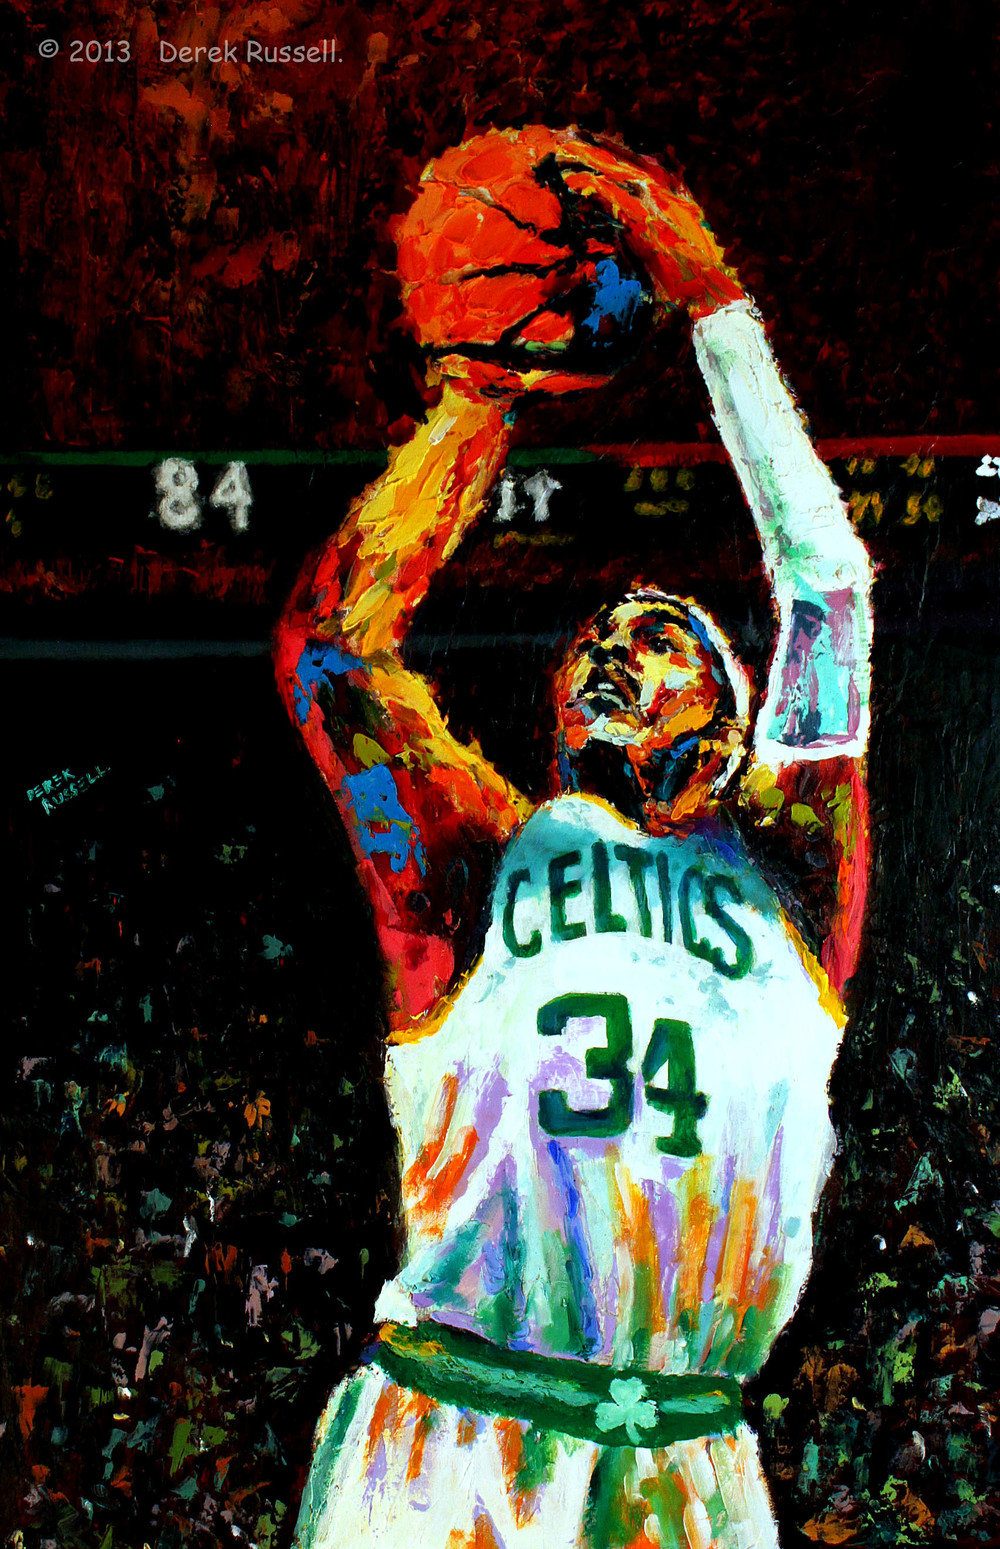 Paul Pierce Original Celtics Fine Art Oil Painting by Celebrity & Corporate Artist Derek Russell